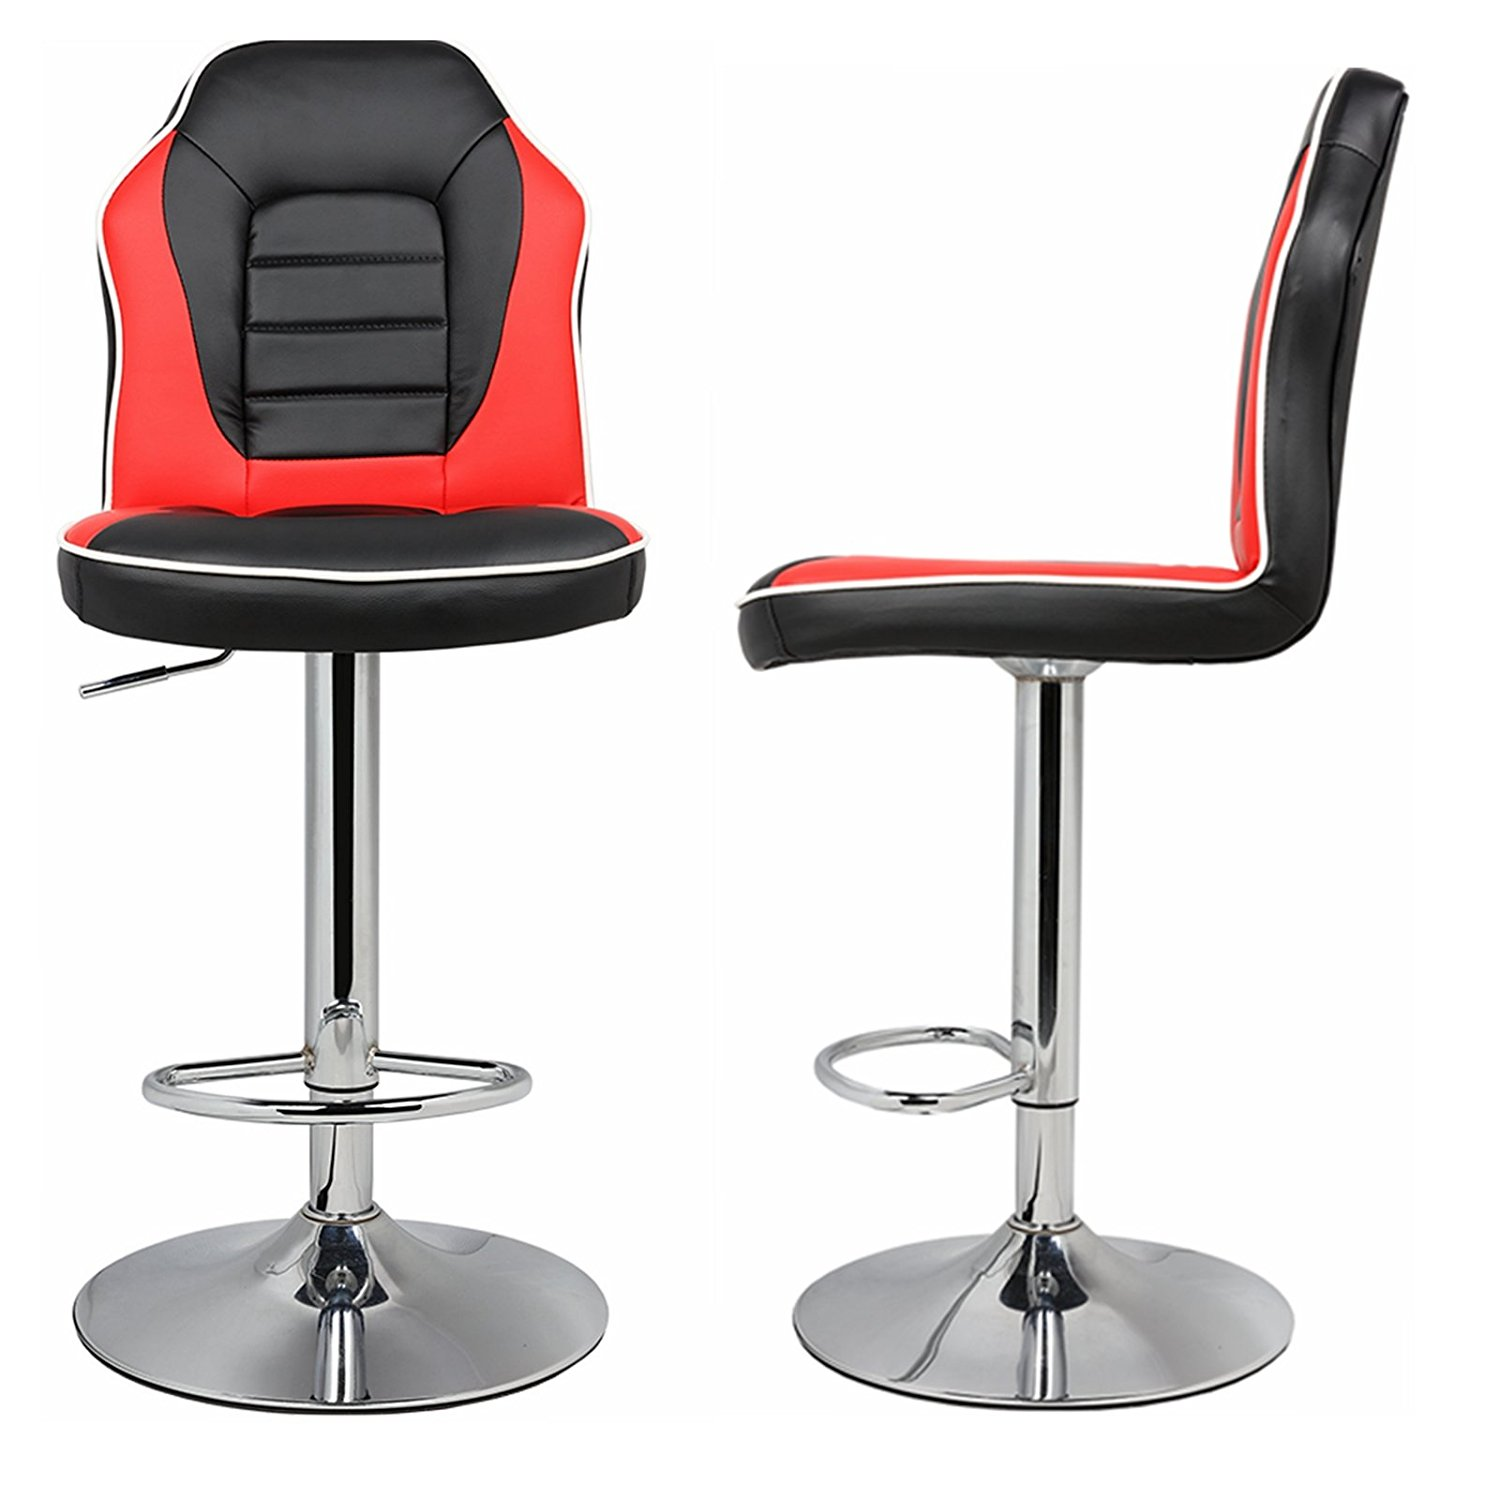 Extra Comfort Modern Racing Seat Bar Stools Chair Adjustable Swivel Mixed Color Set of 2 Black/Red